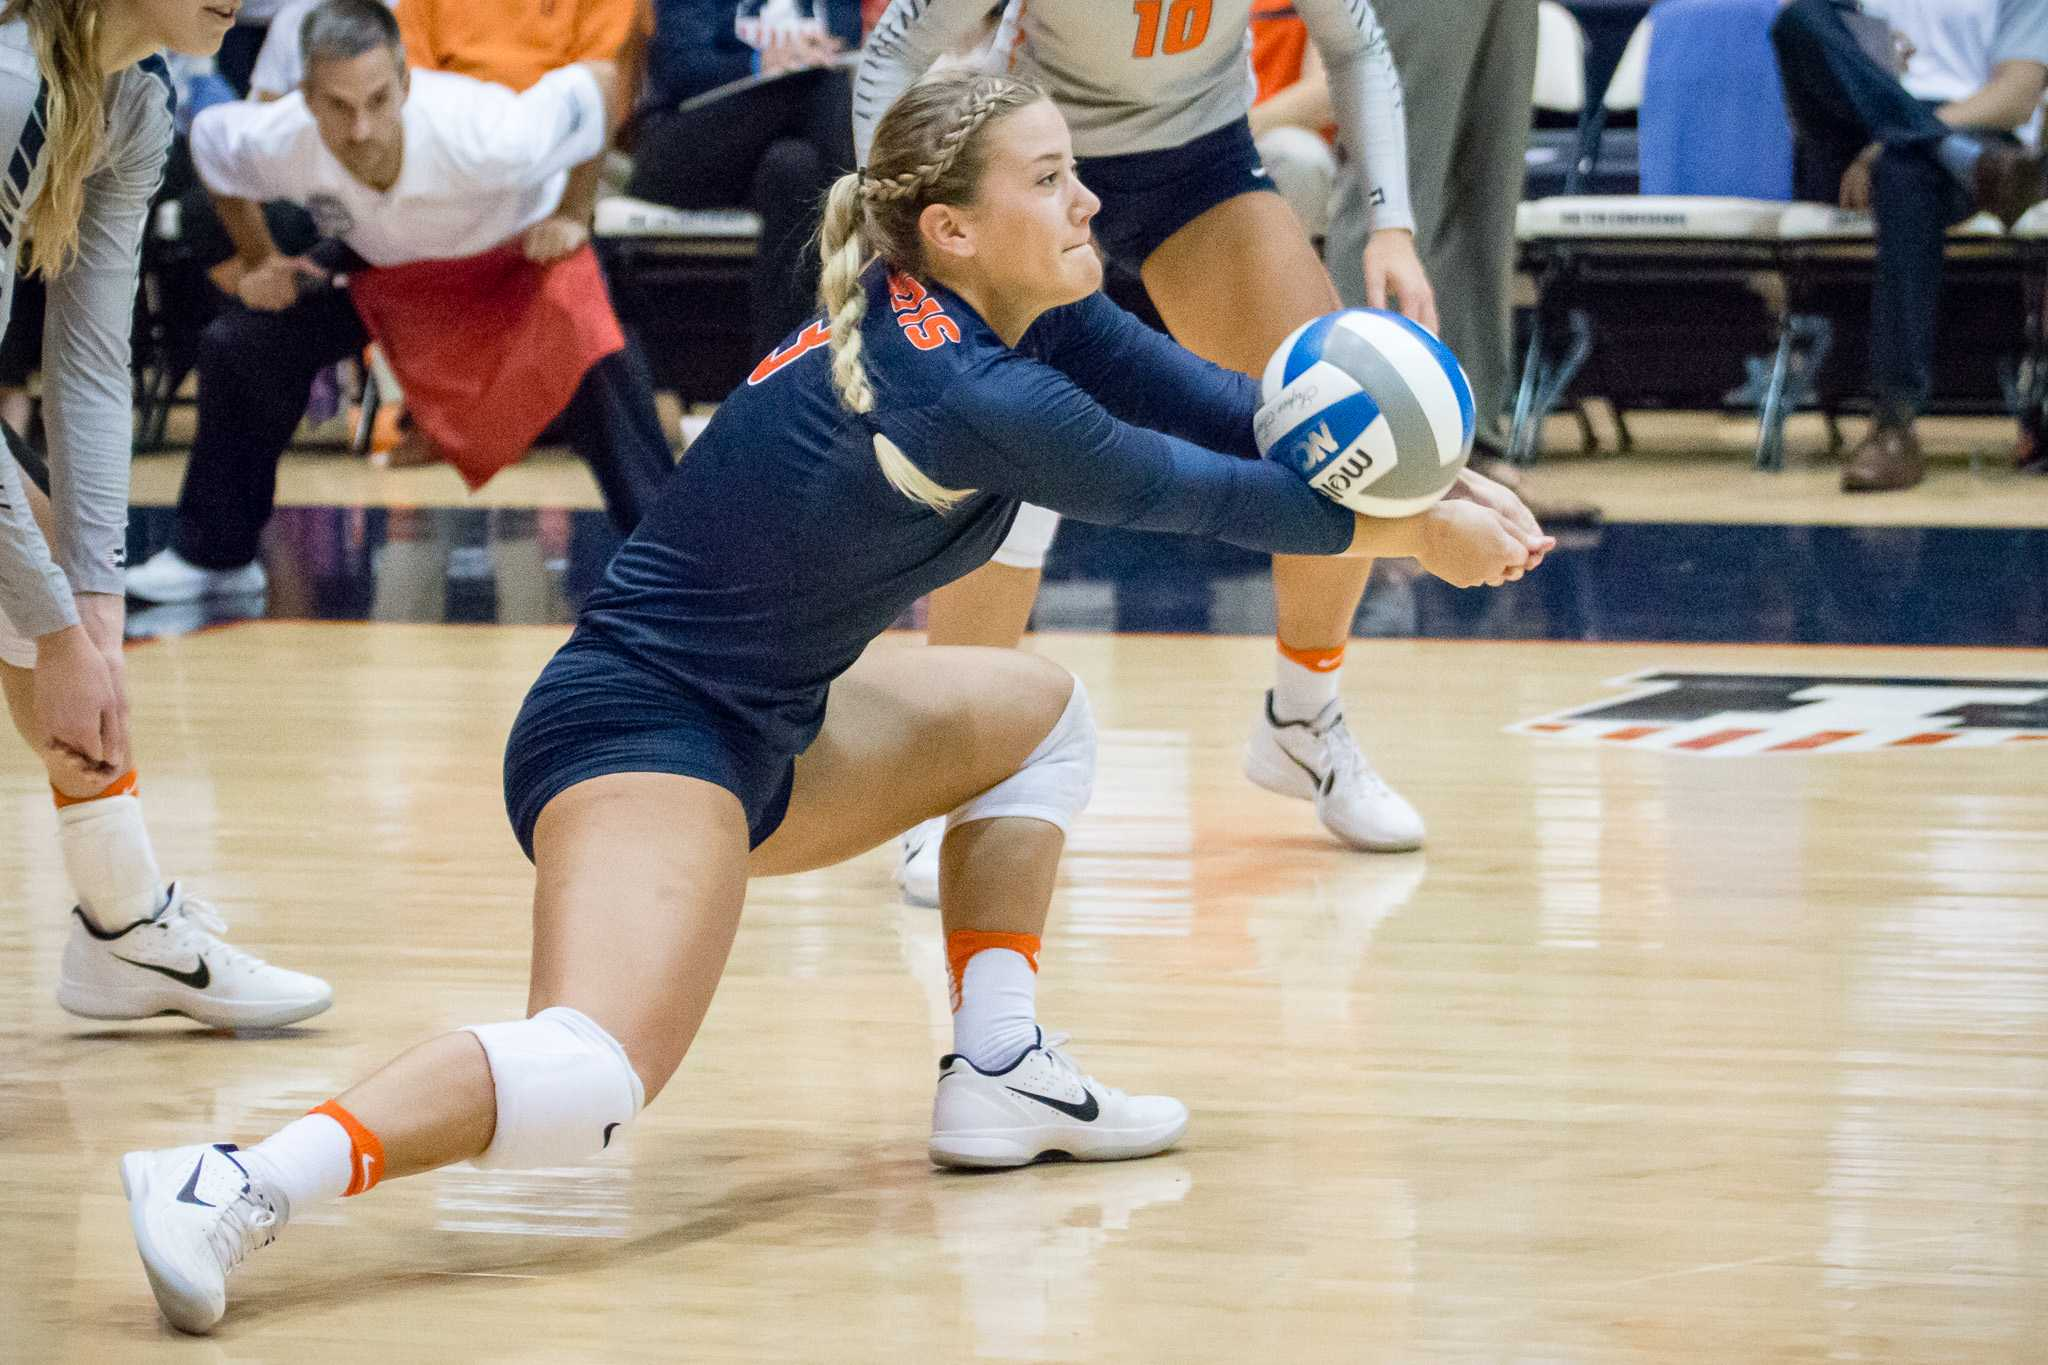 Illinois' Brandi Donnelly passes the ball during the match against Northwestern at Huff Hall on Saturday, October 15. The Illini won 3-0.